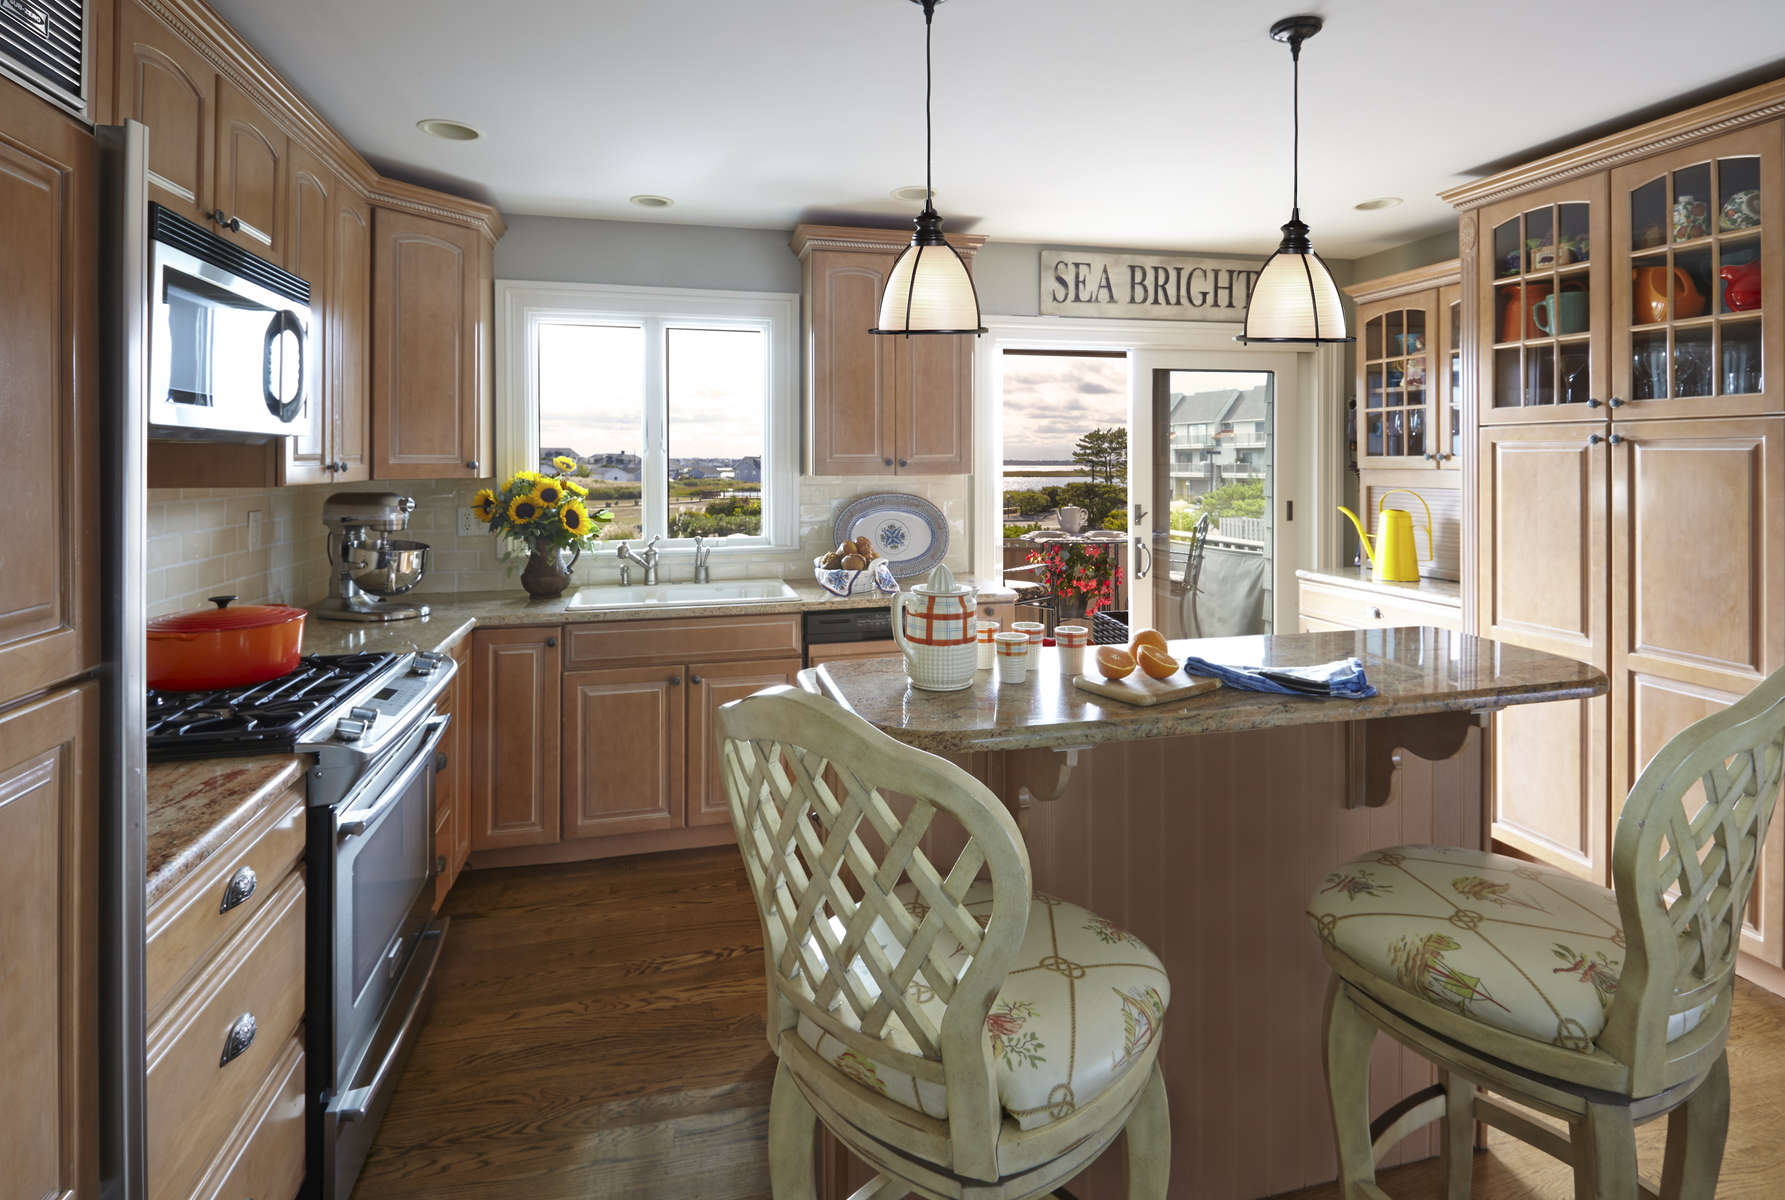 Beach house kitchen with glazed light wood cabinetry. Two height center island.